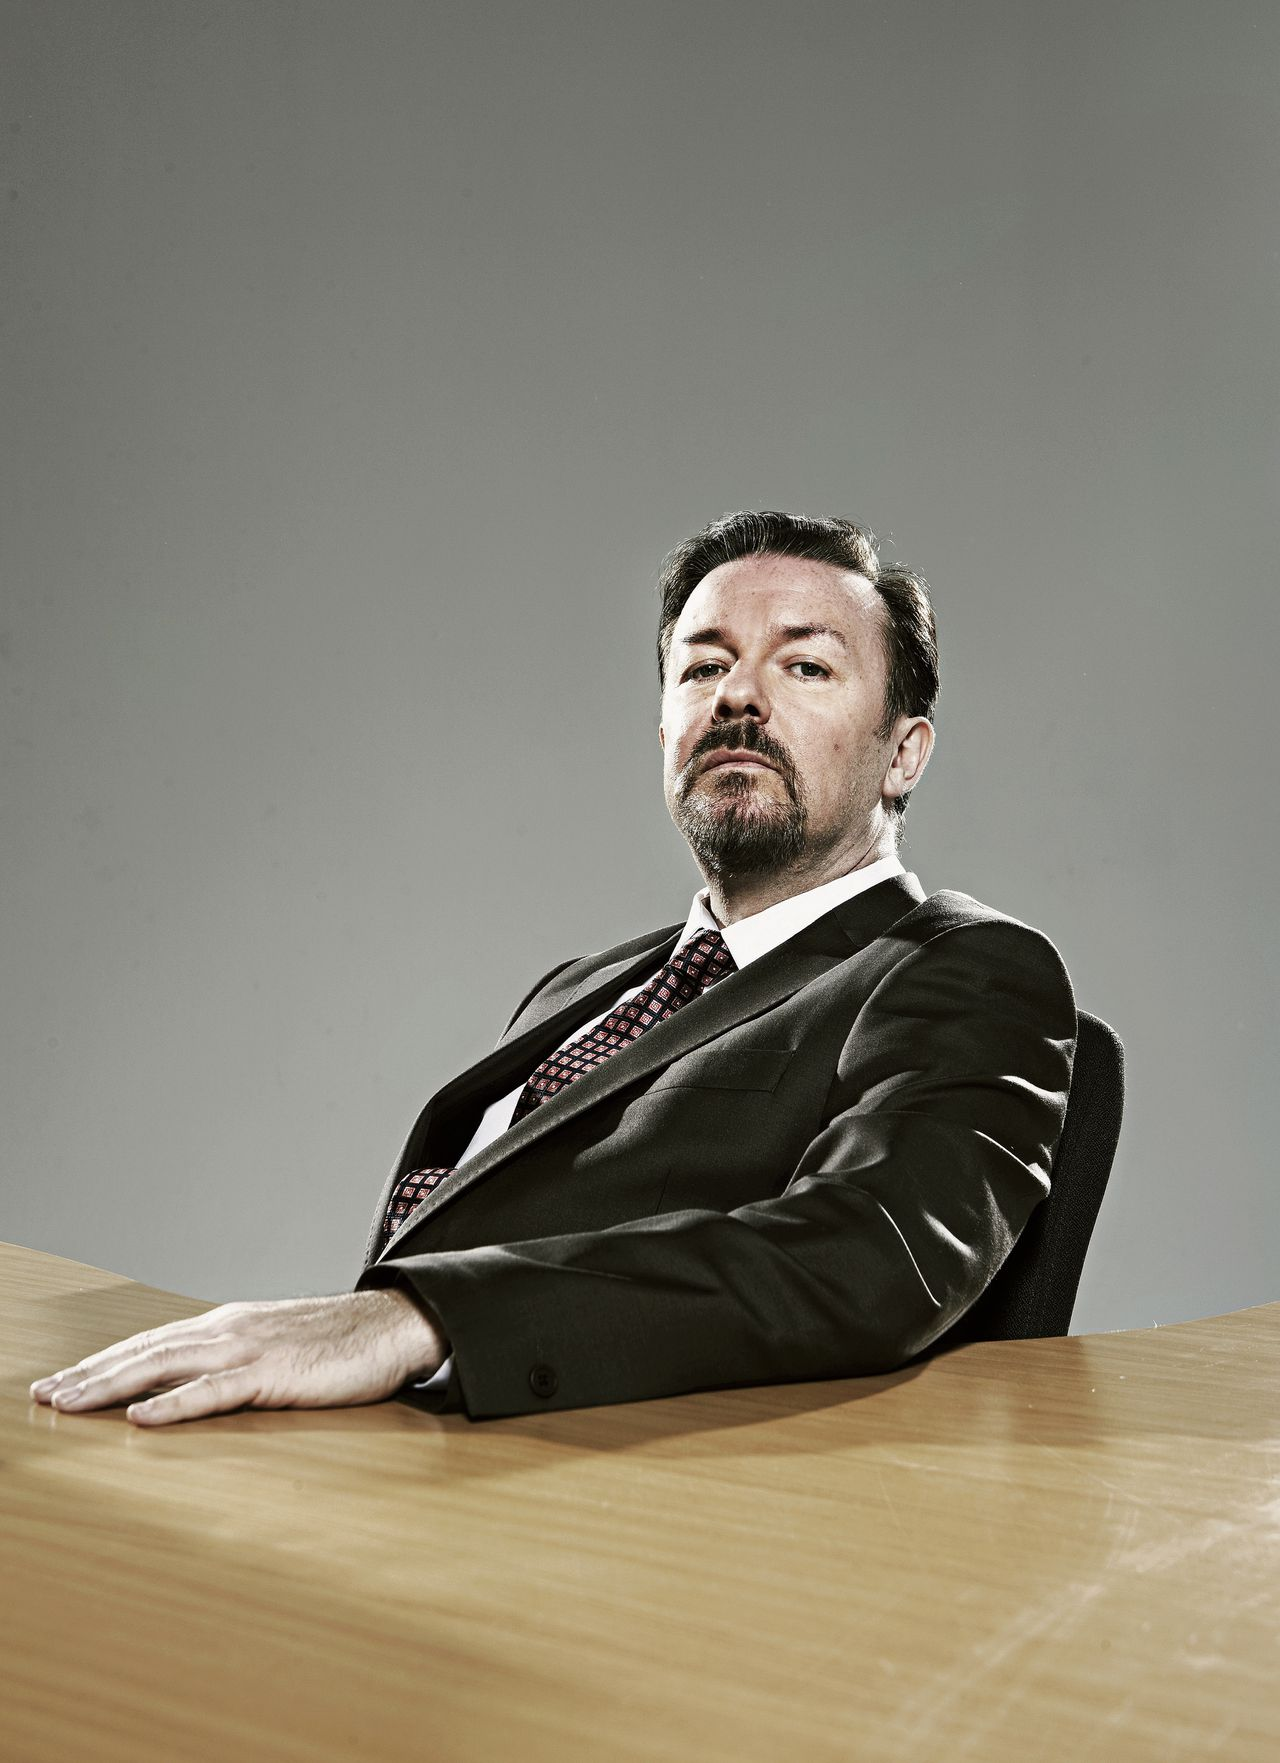 Ricky Gervais speelt David Brent, een boss from hell, in de BBC-comedyserie The Office.